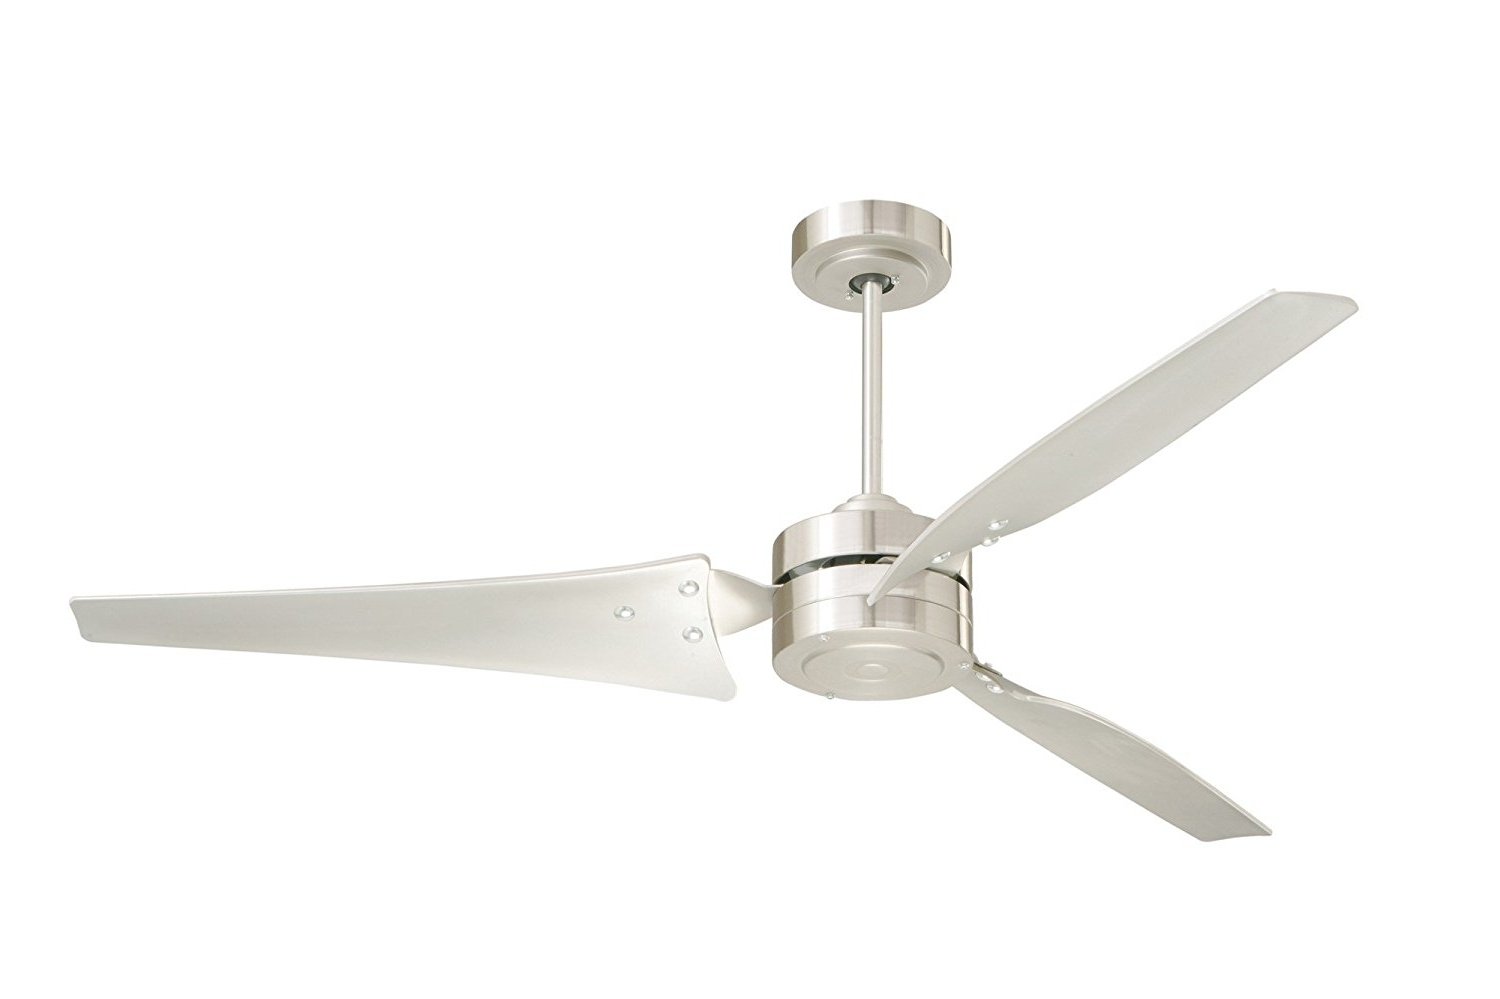 Famous Cheap Outdoor Ceiling Fan, Find Outdoor Ceiling Fan Deals On Line At With Regard To Emerson Outdoor Ceiling Fans With Lights (View 6 of 20)